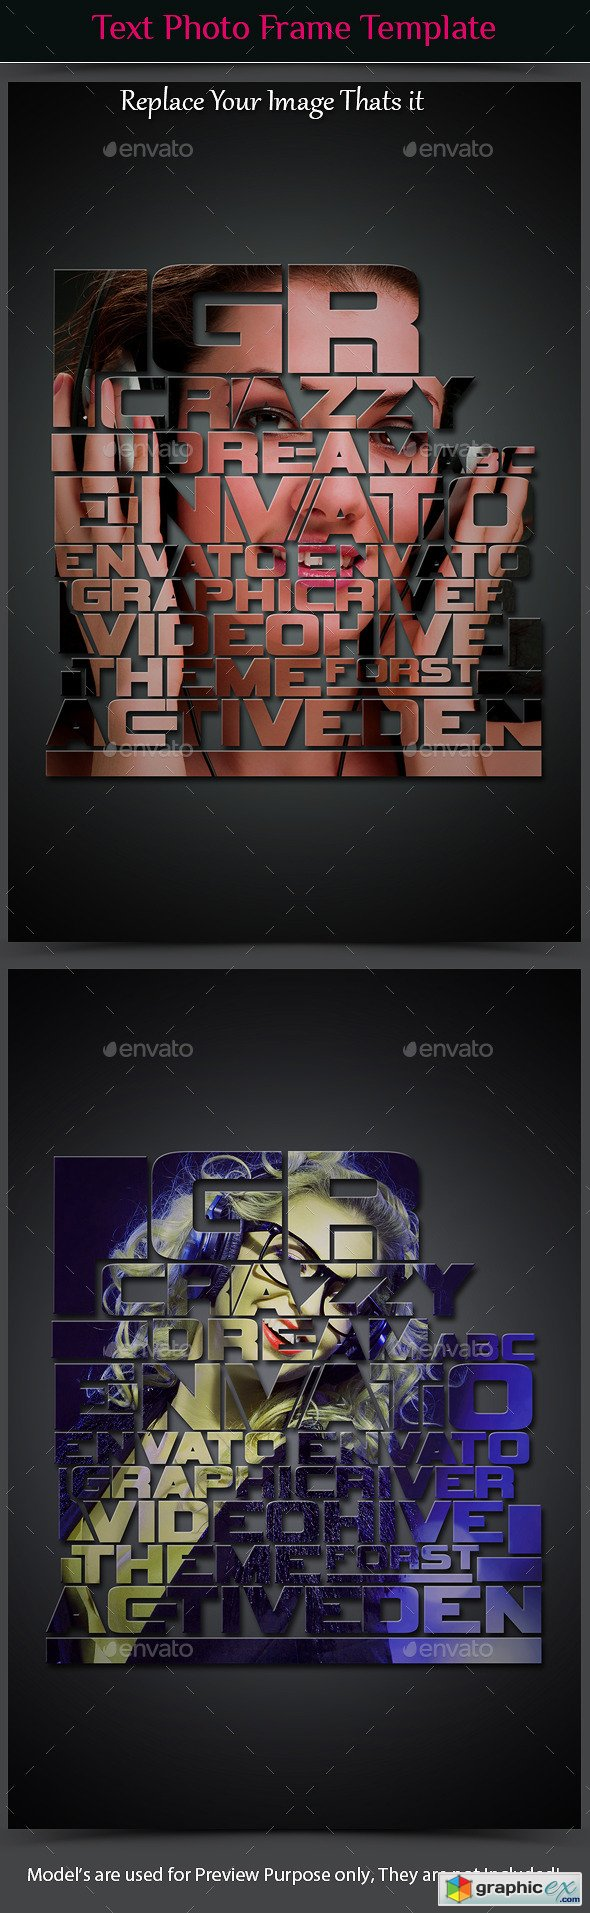 Text Photo Frame Template